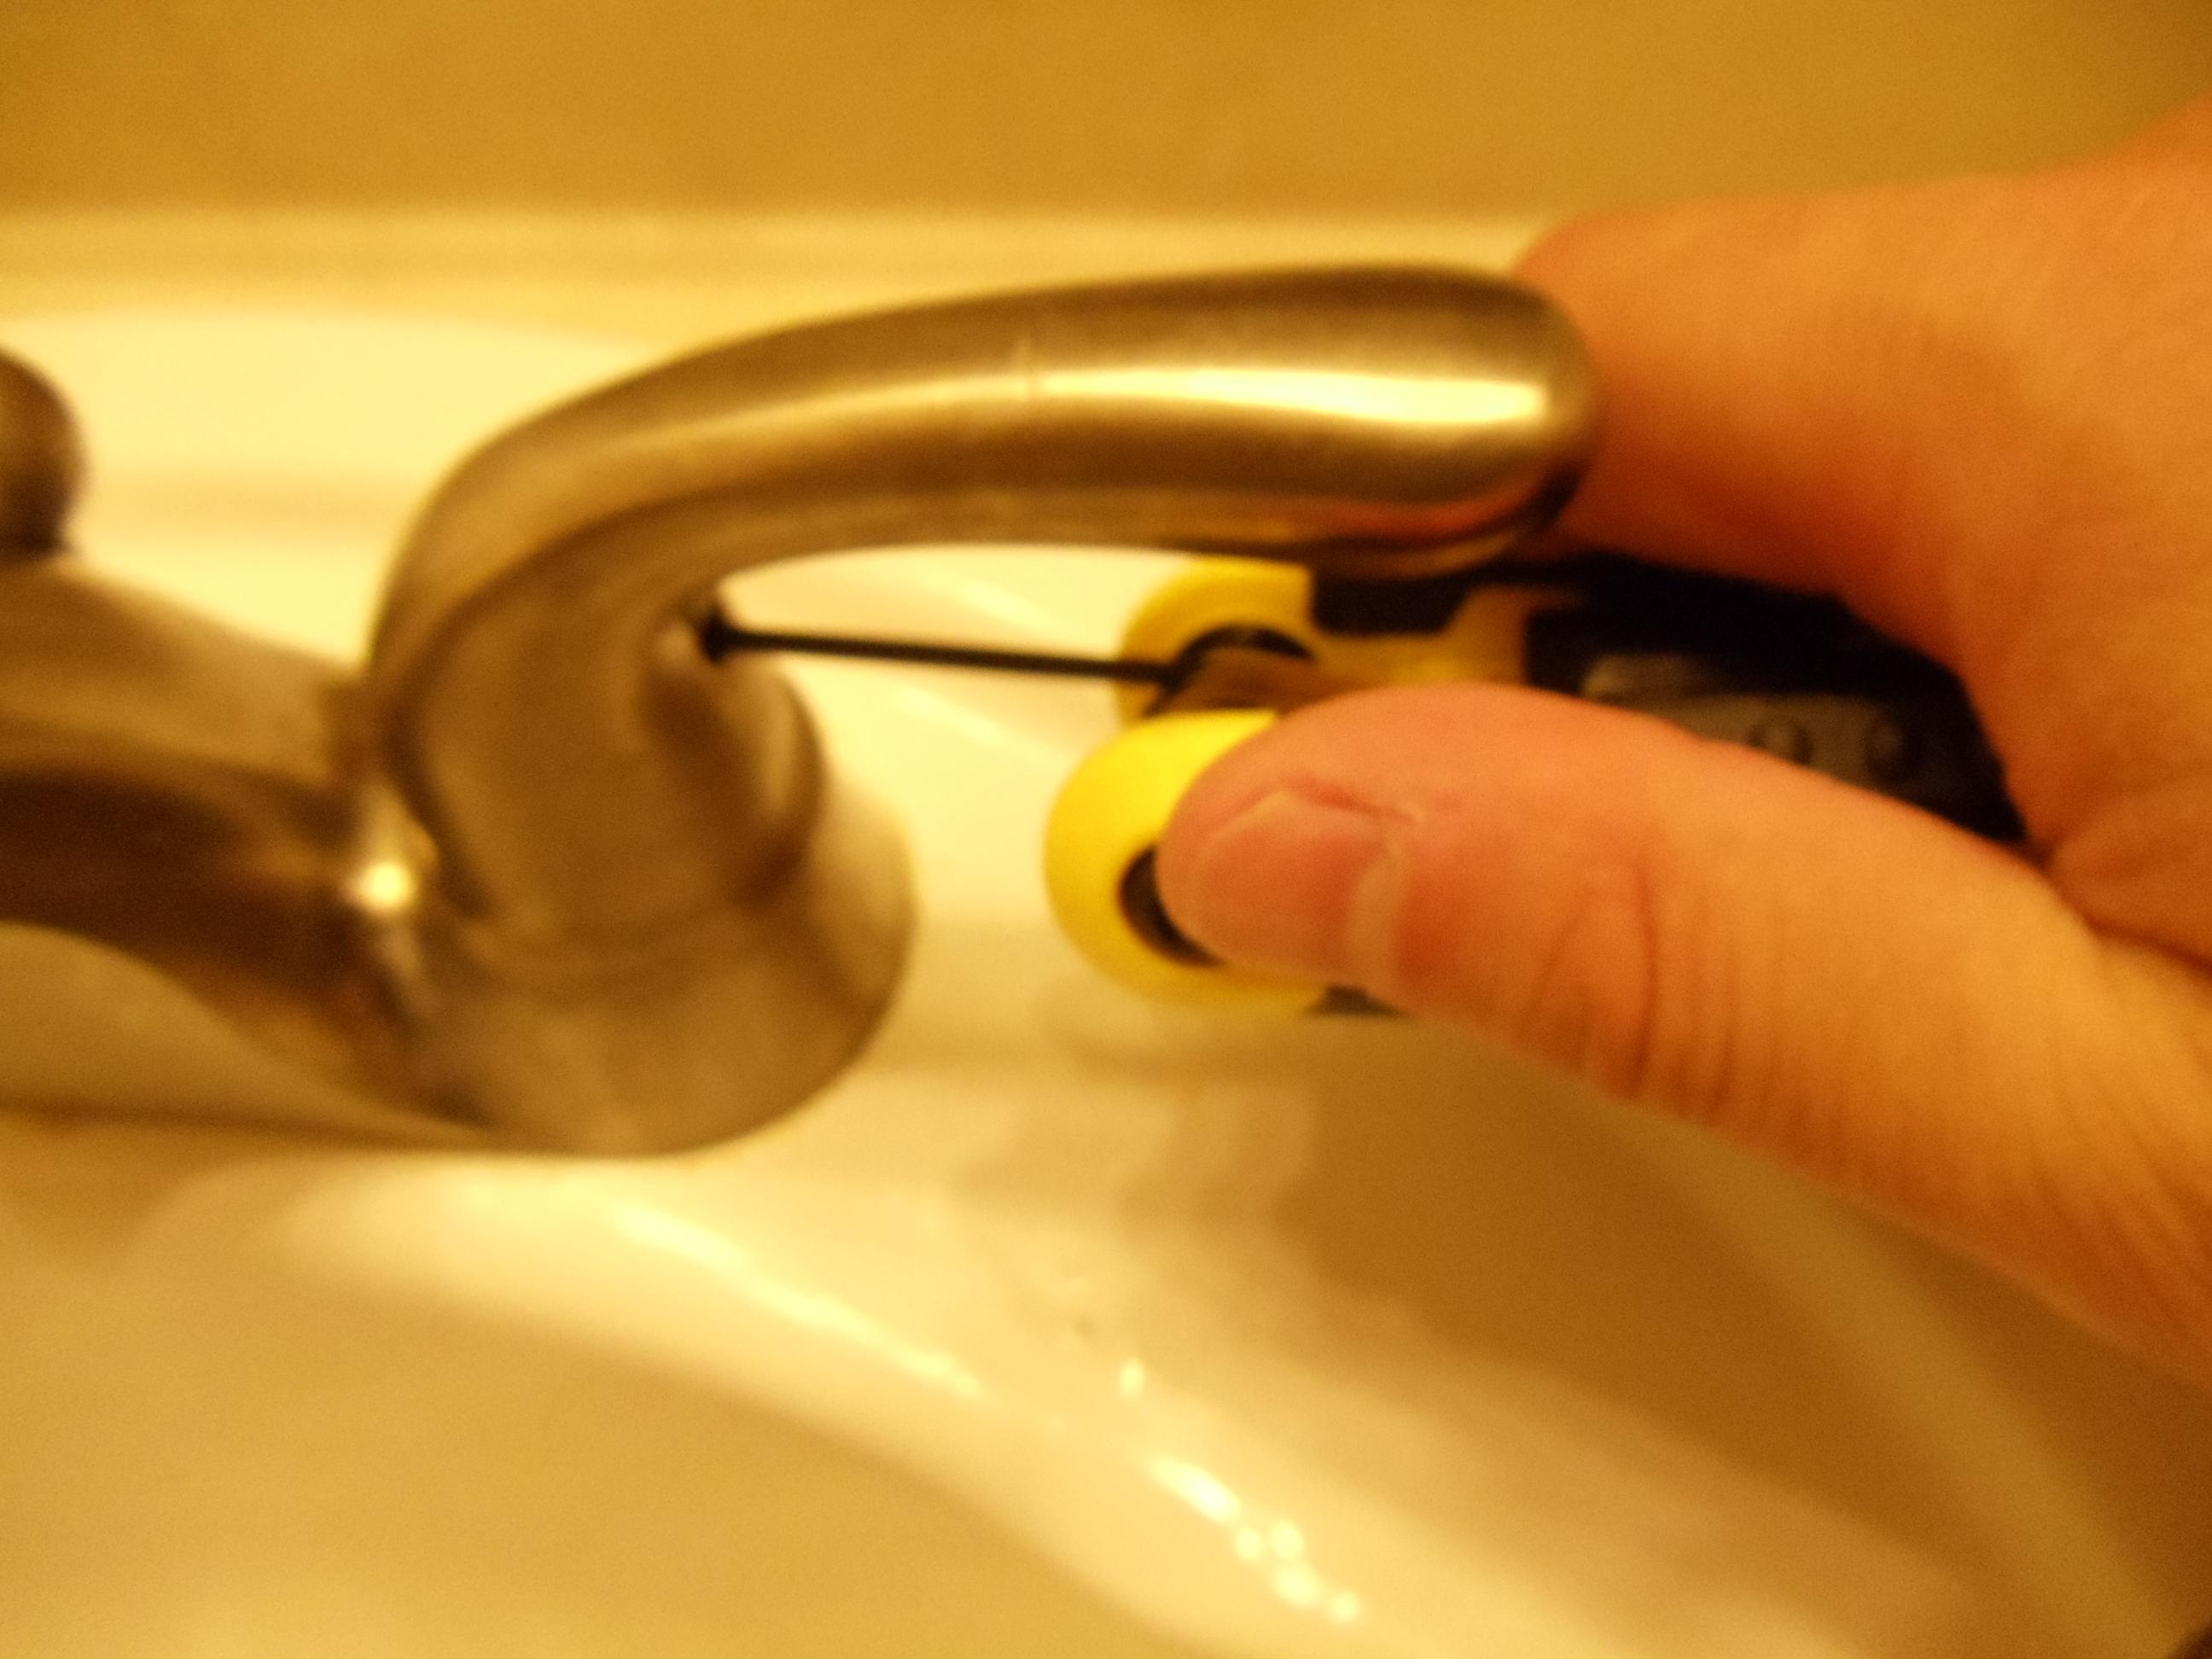 How to Fix a Leaking Glacier Bay Bathroom Sink Faucet - DIY Home ...